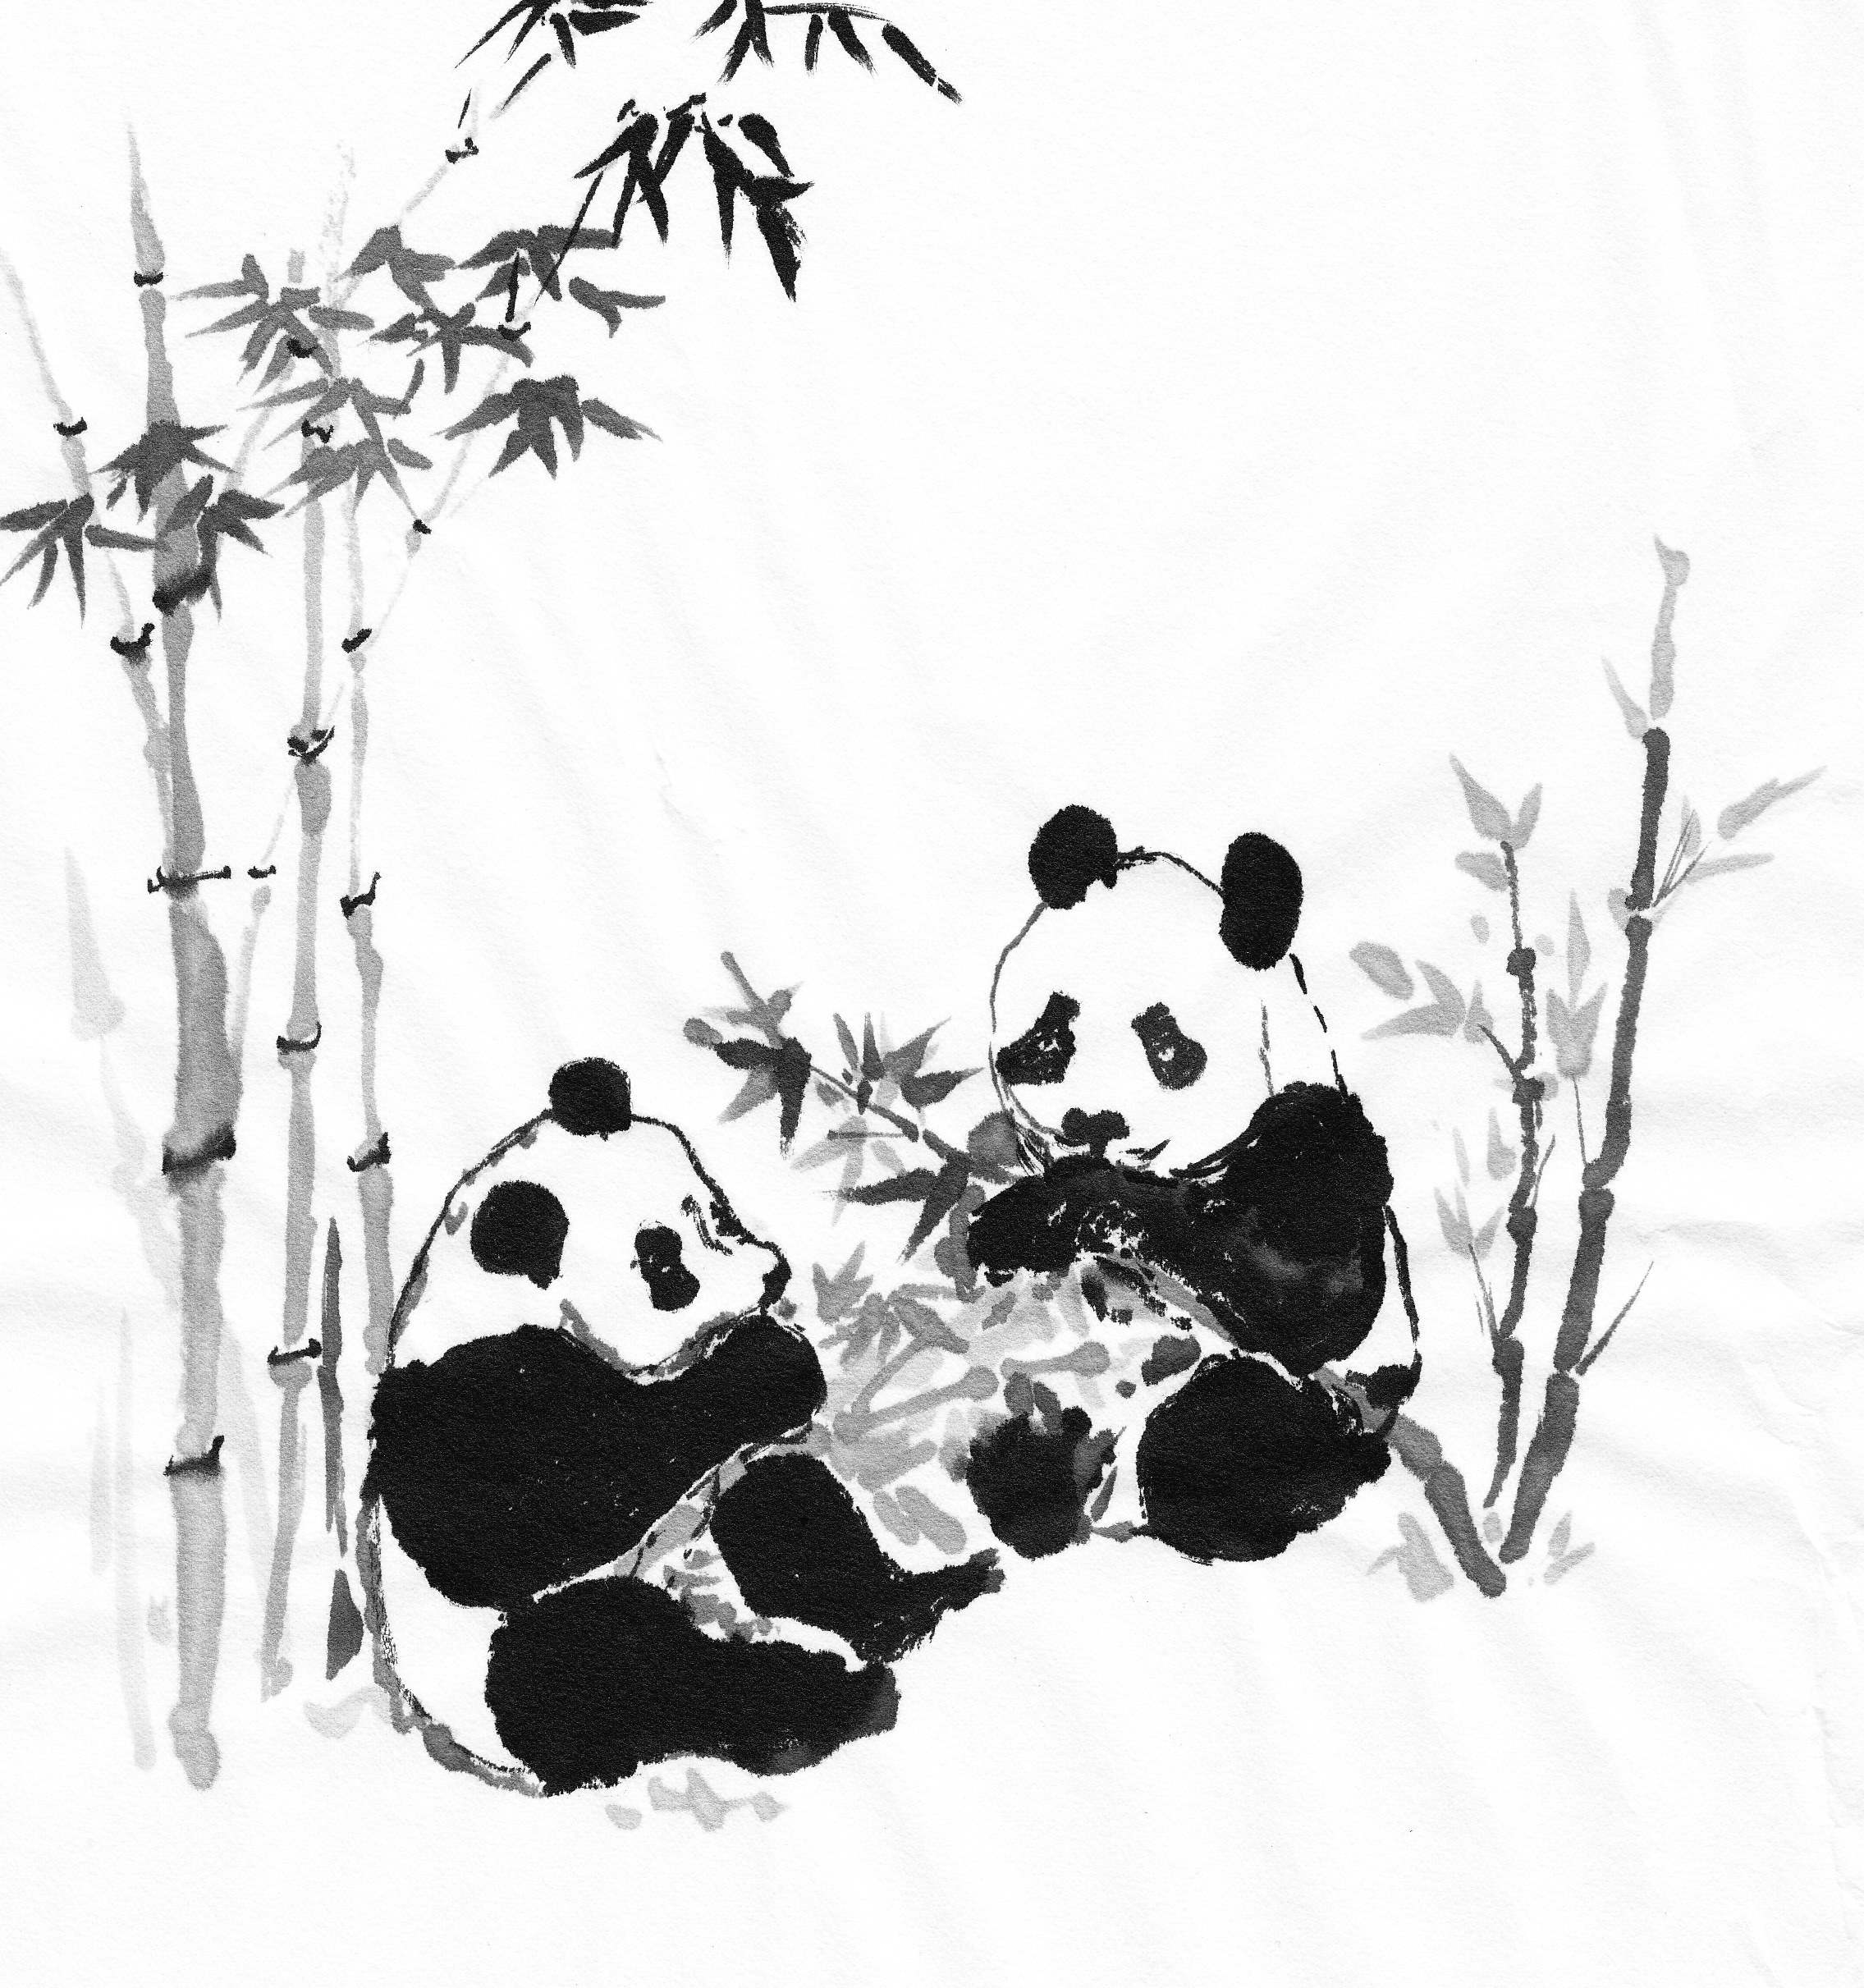 Download Wallpaper Home Screen Panda - pandasmunchjpg  Perfect Image Reference_457442.jpg